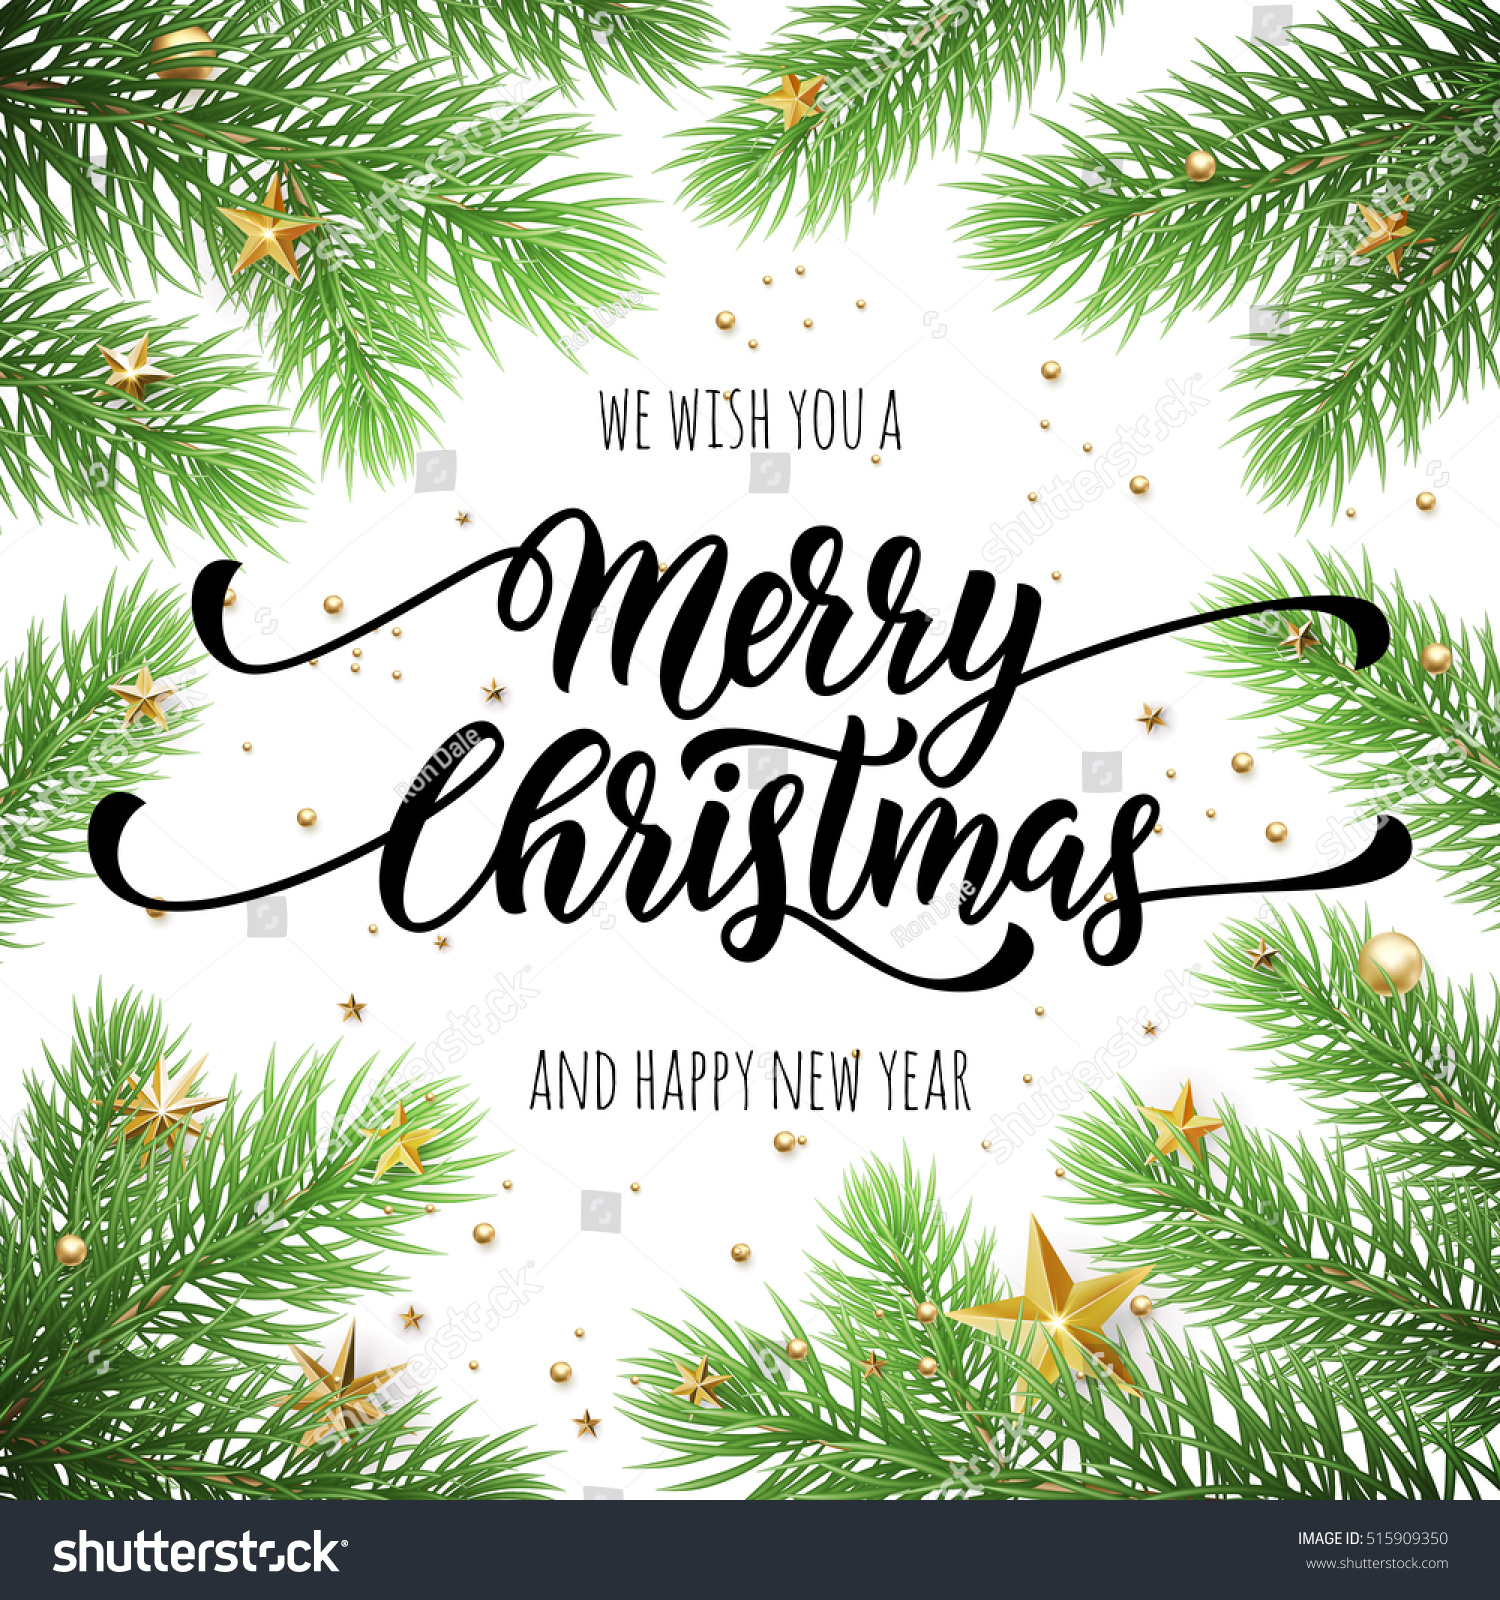 Merry Christmas Happy New Year Greeting Stock Vector 515909350